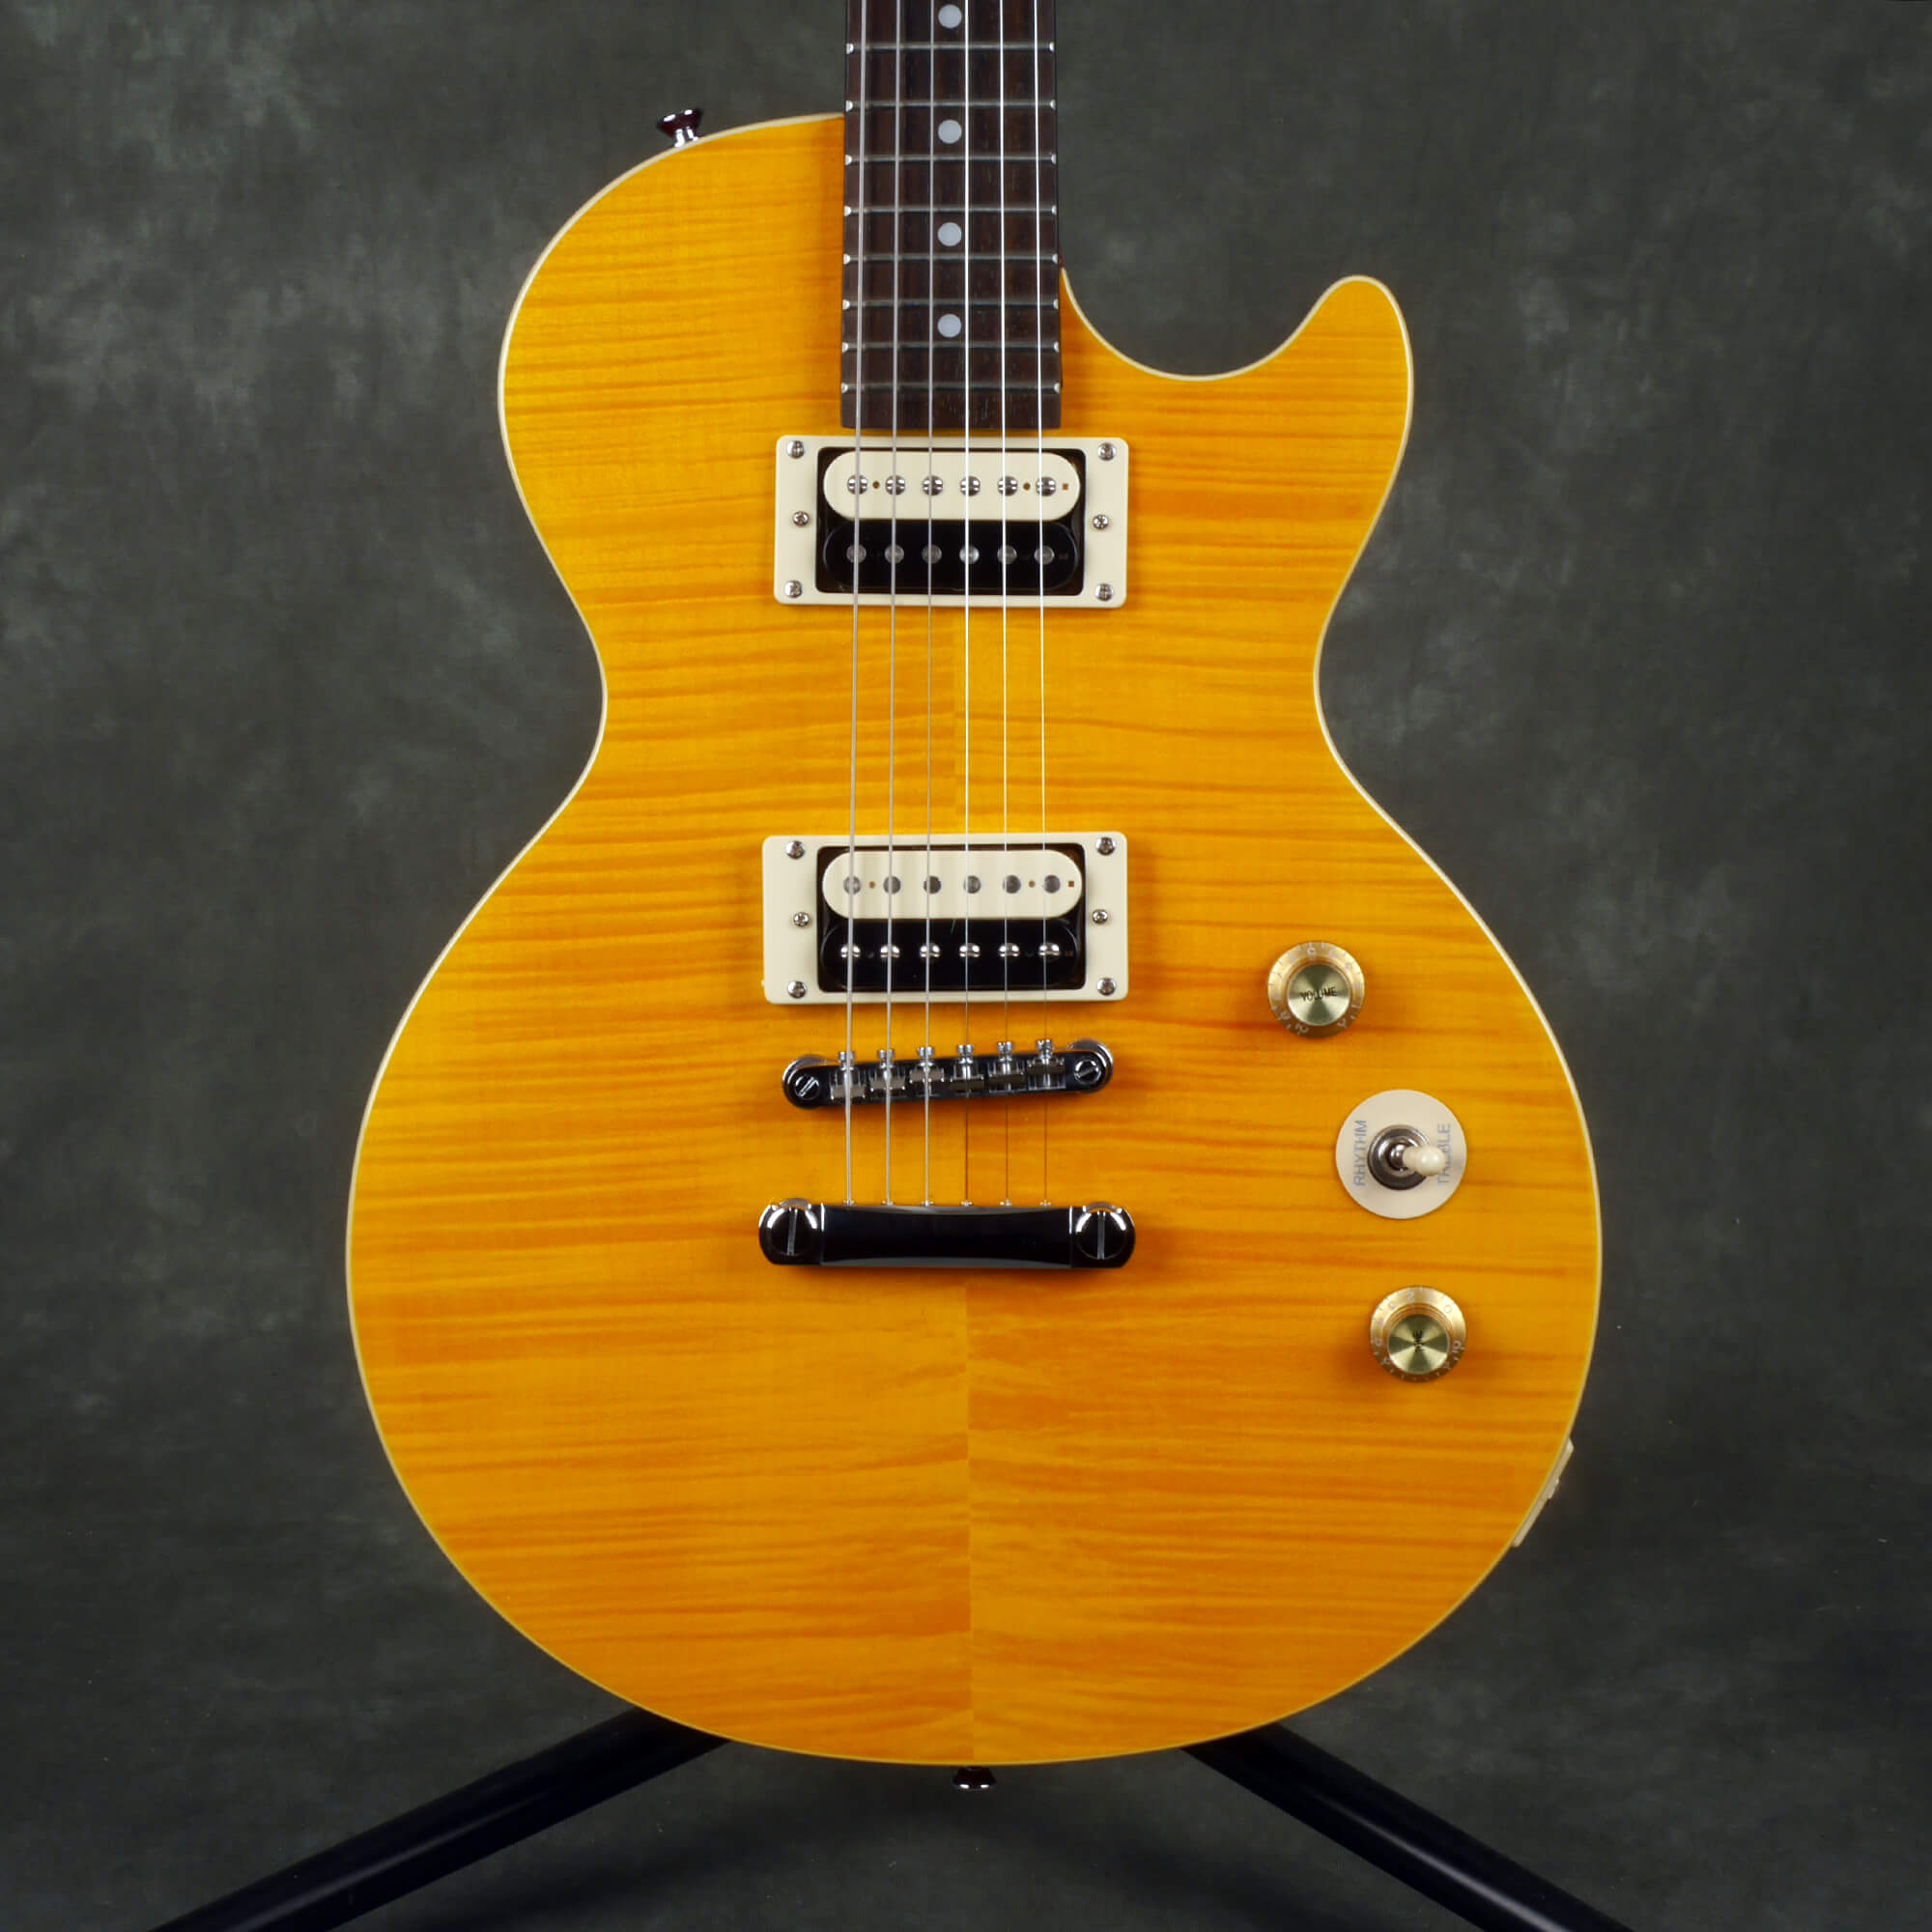 Epiphone Slash 'AFD' Les Paul Special-II - Appetite Amber - 2nd Hand